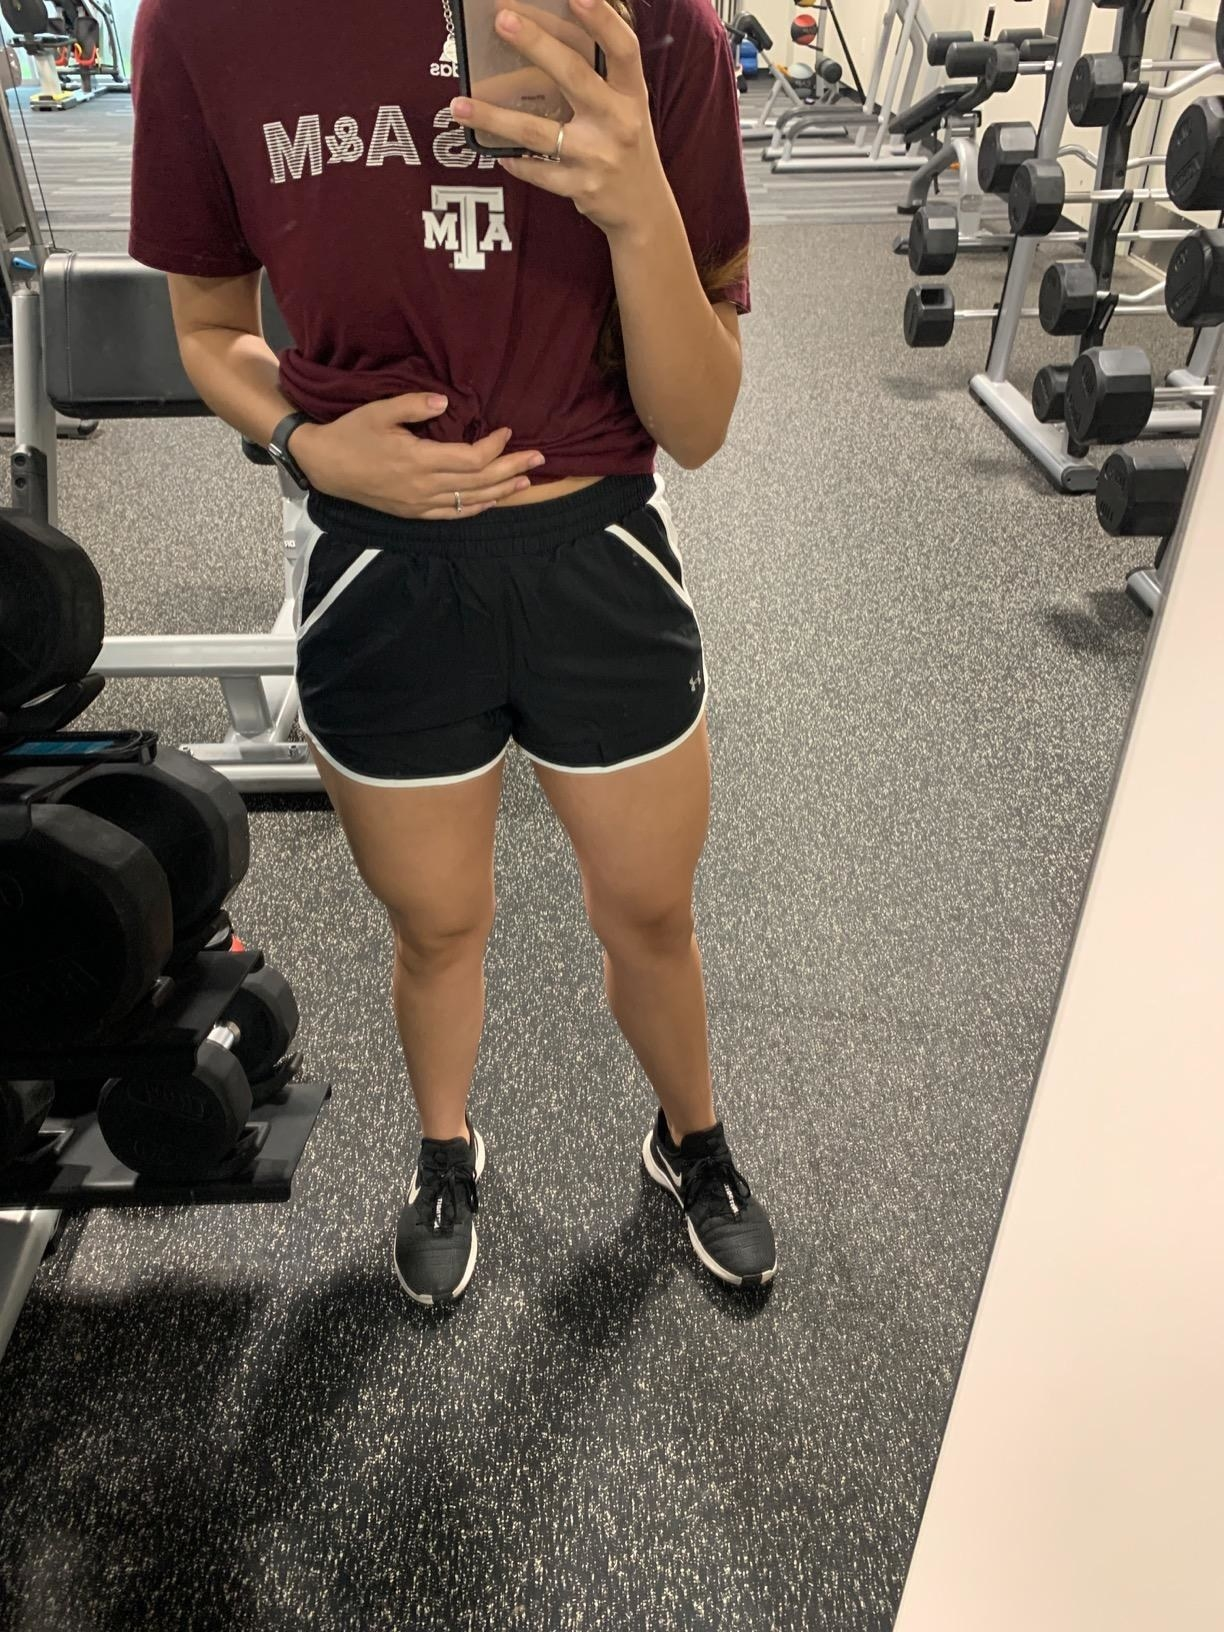 Reviewer wears black Under Armour running shorts while taking a selfie at the gym